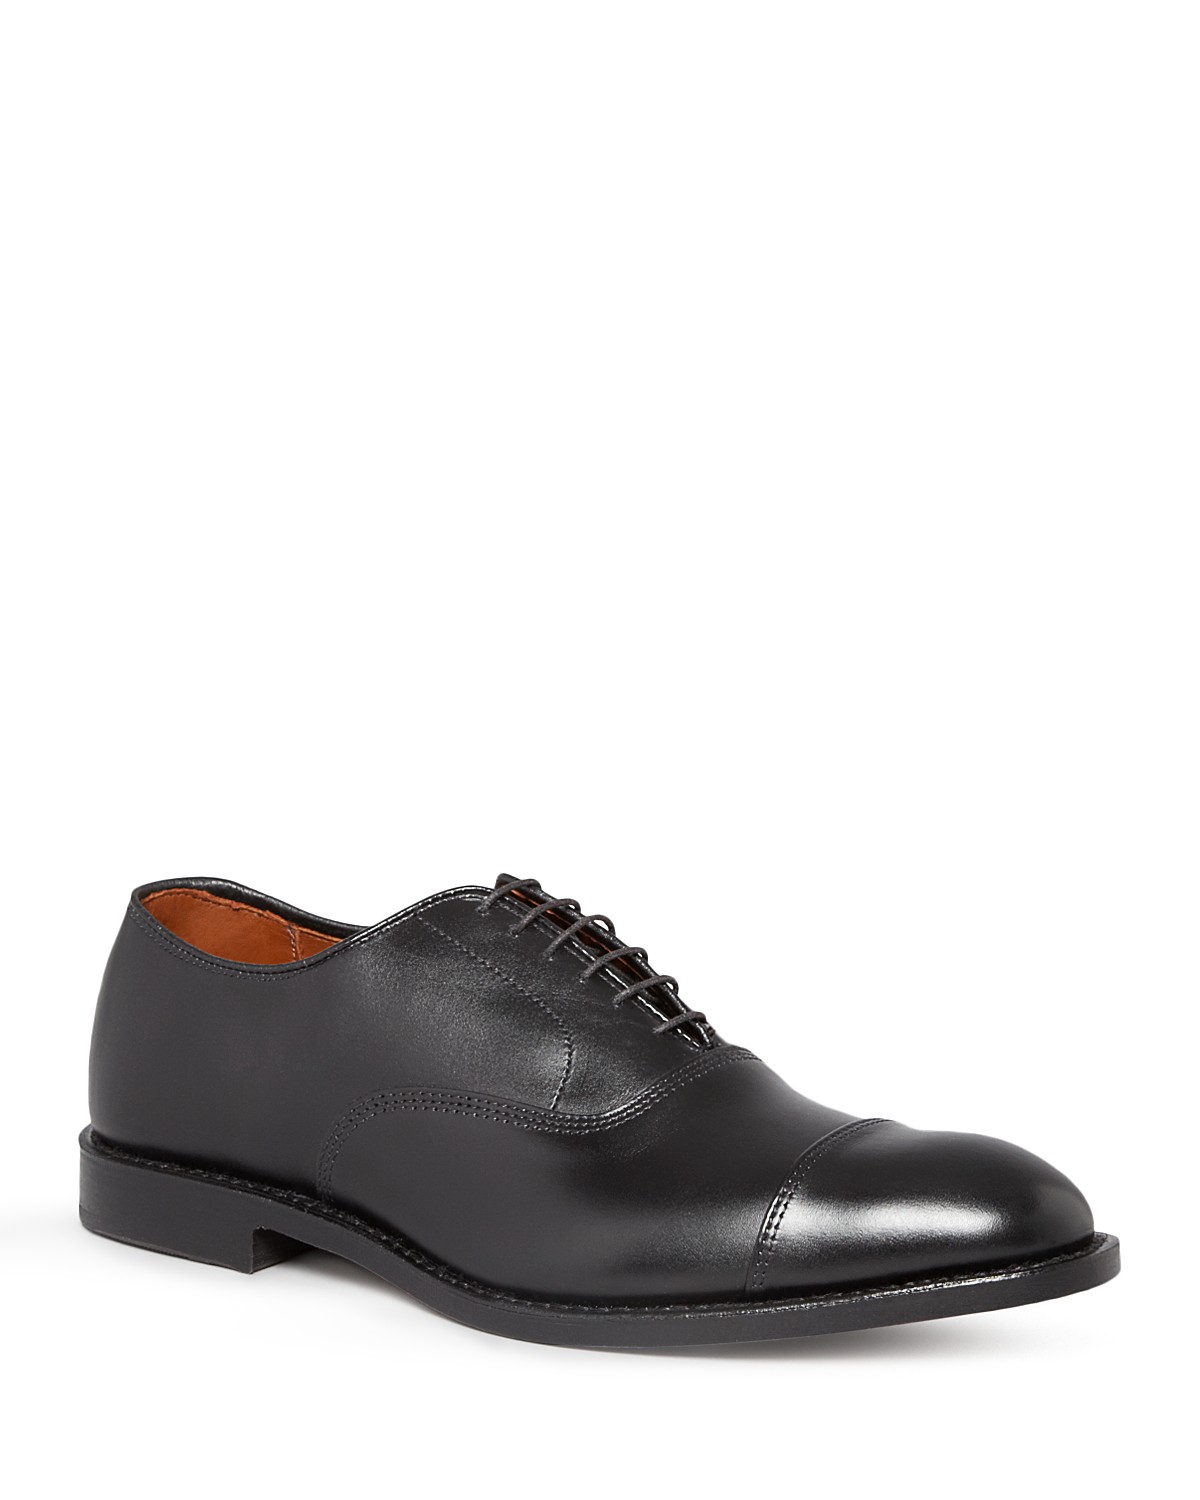 Dress Shoes Guide For Wall Street